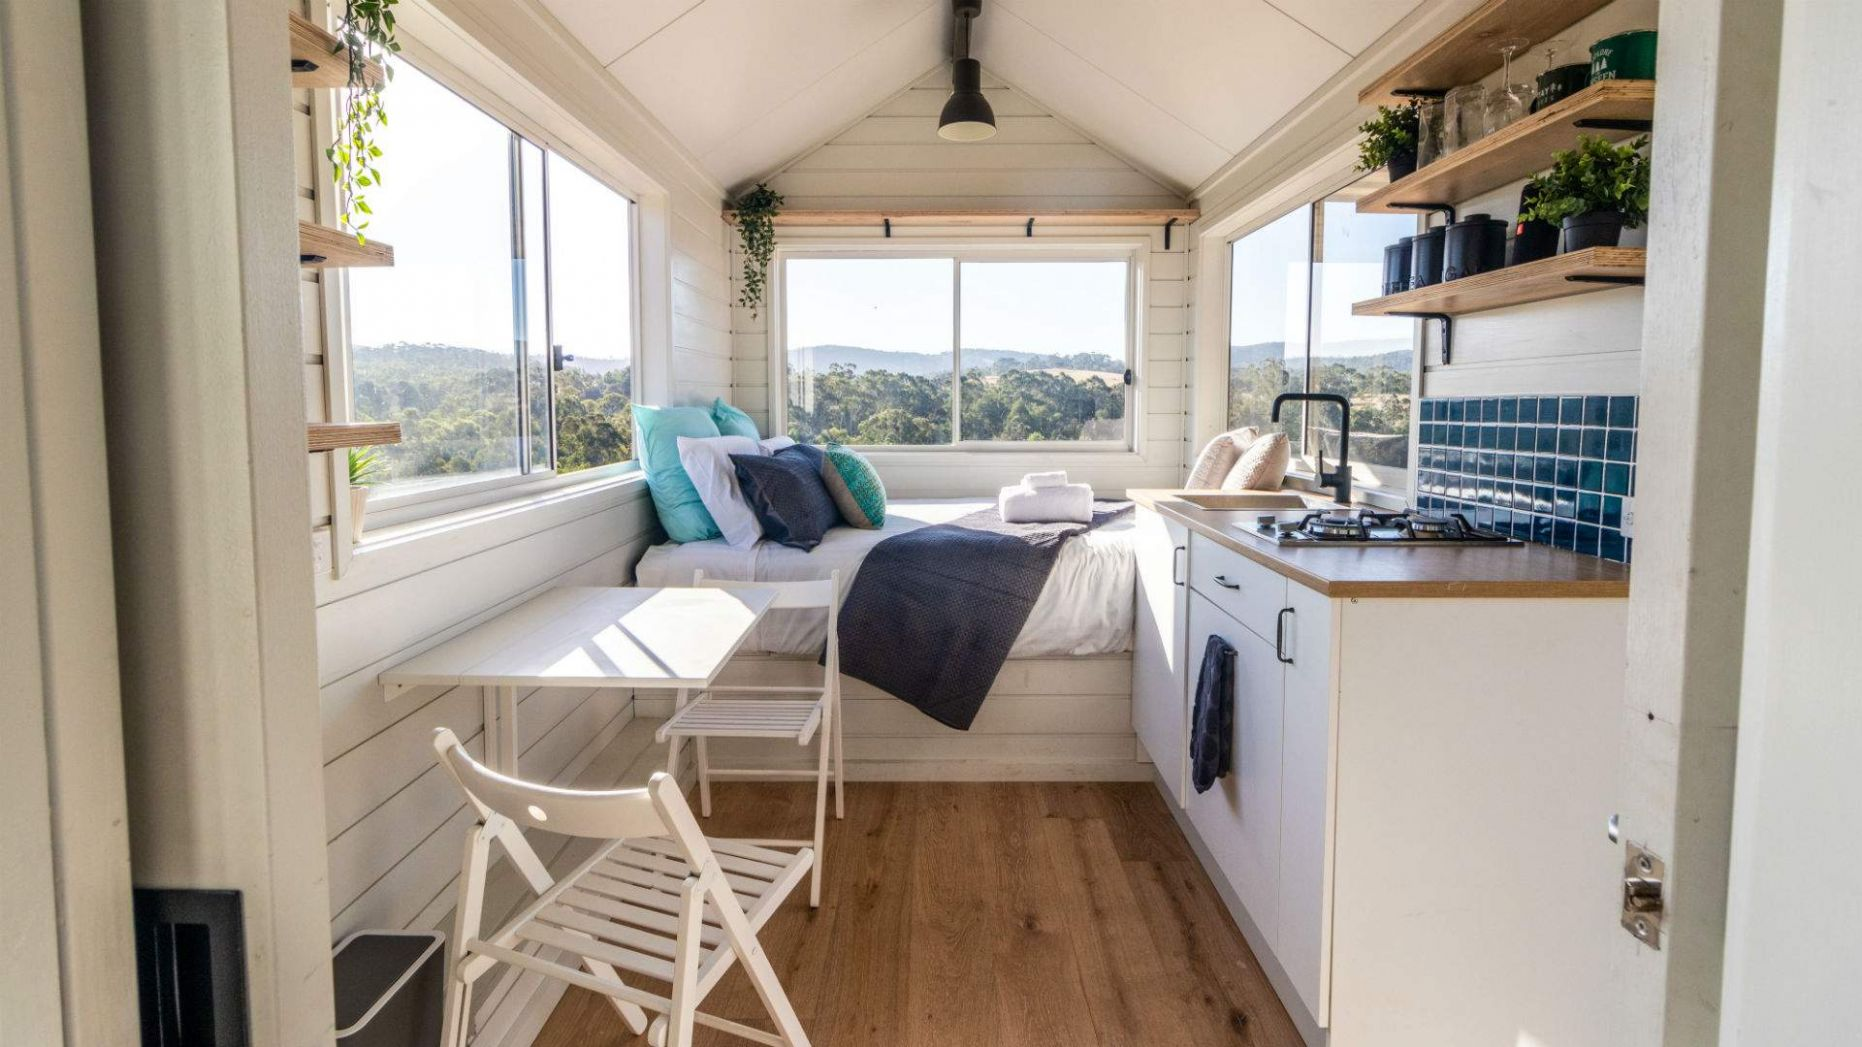 This Secluded Tiny House in the Yarra Valley Is Your New Reason to ...